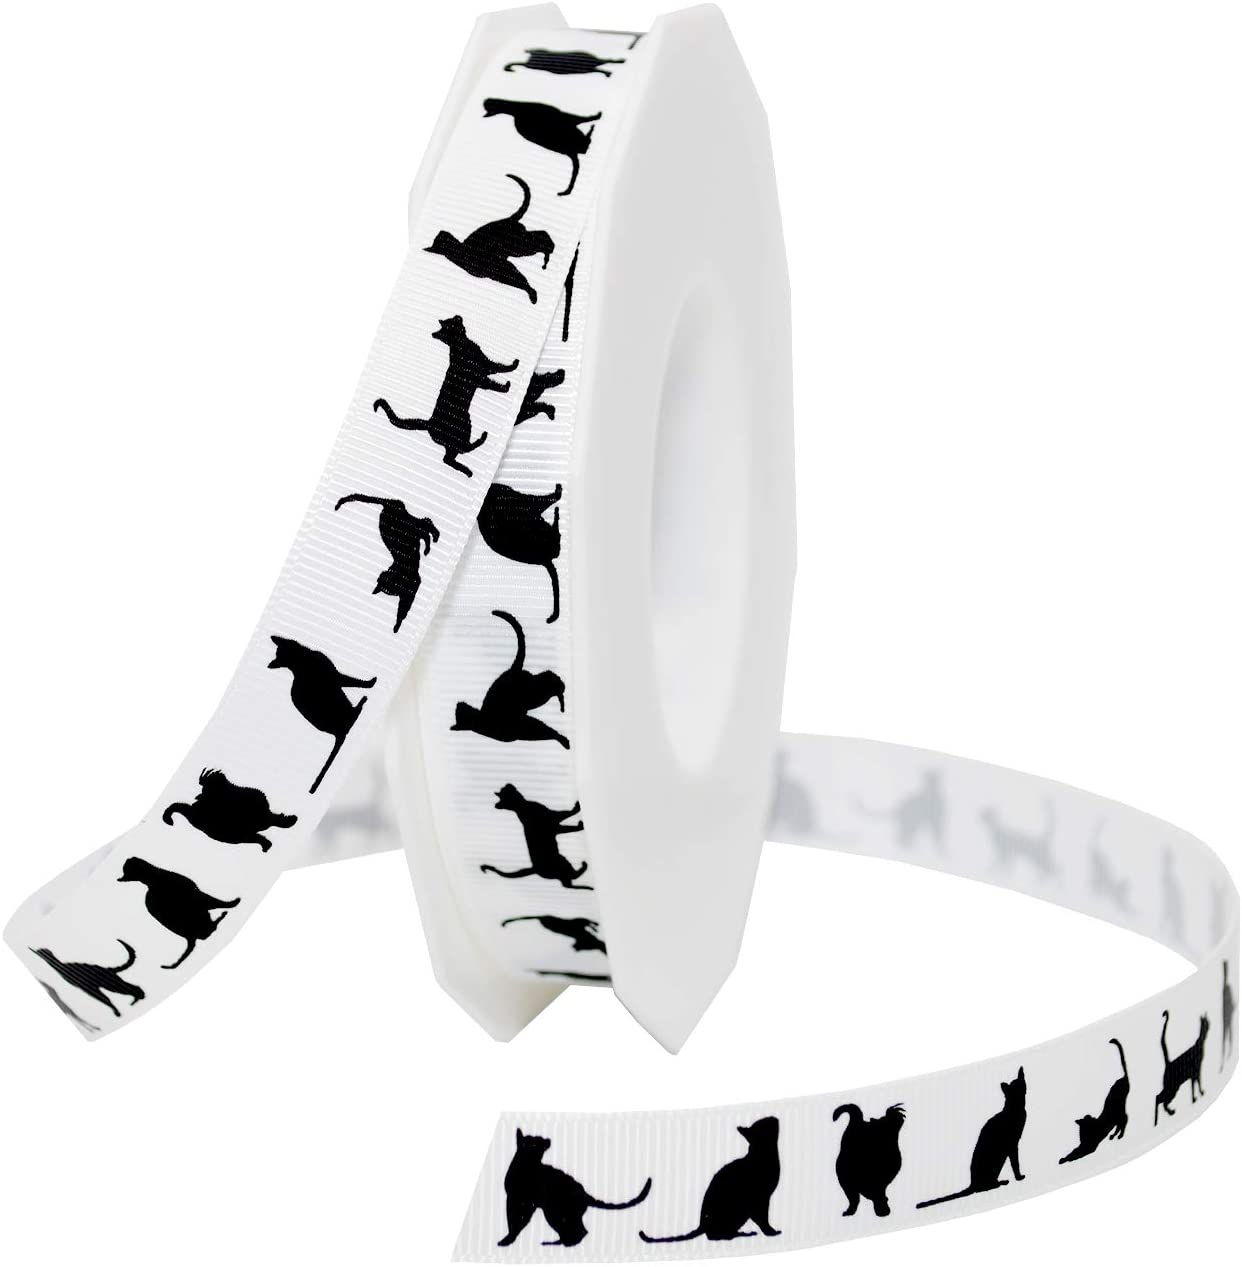 NEW Morex Ribbon Paw Print Satin Spool 7 8 Inch by 20 Yard Black White